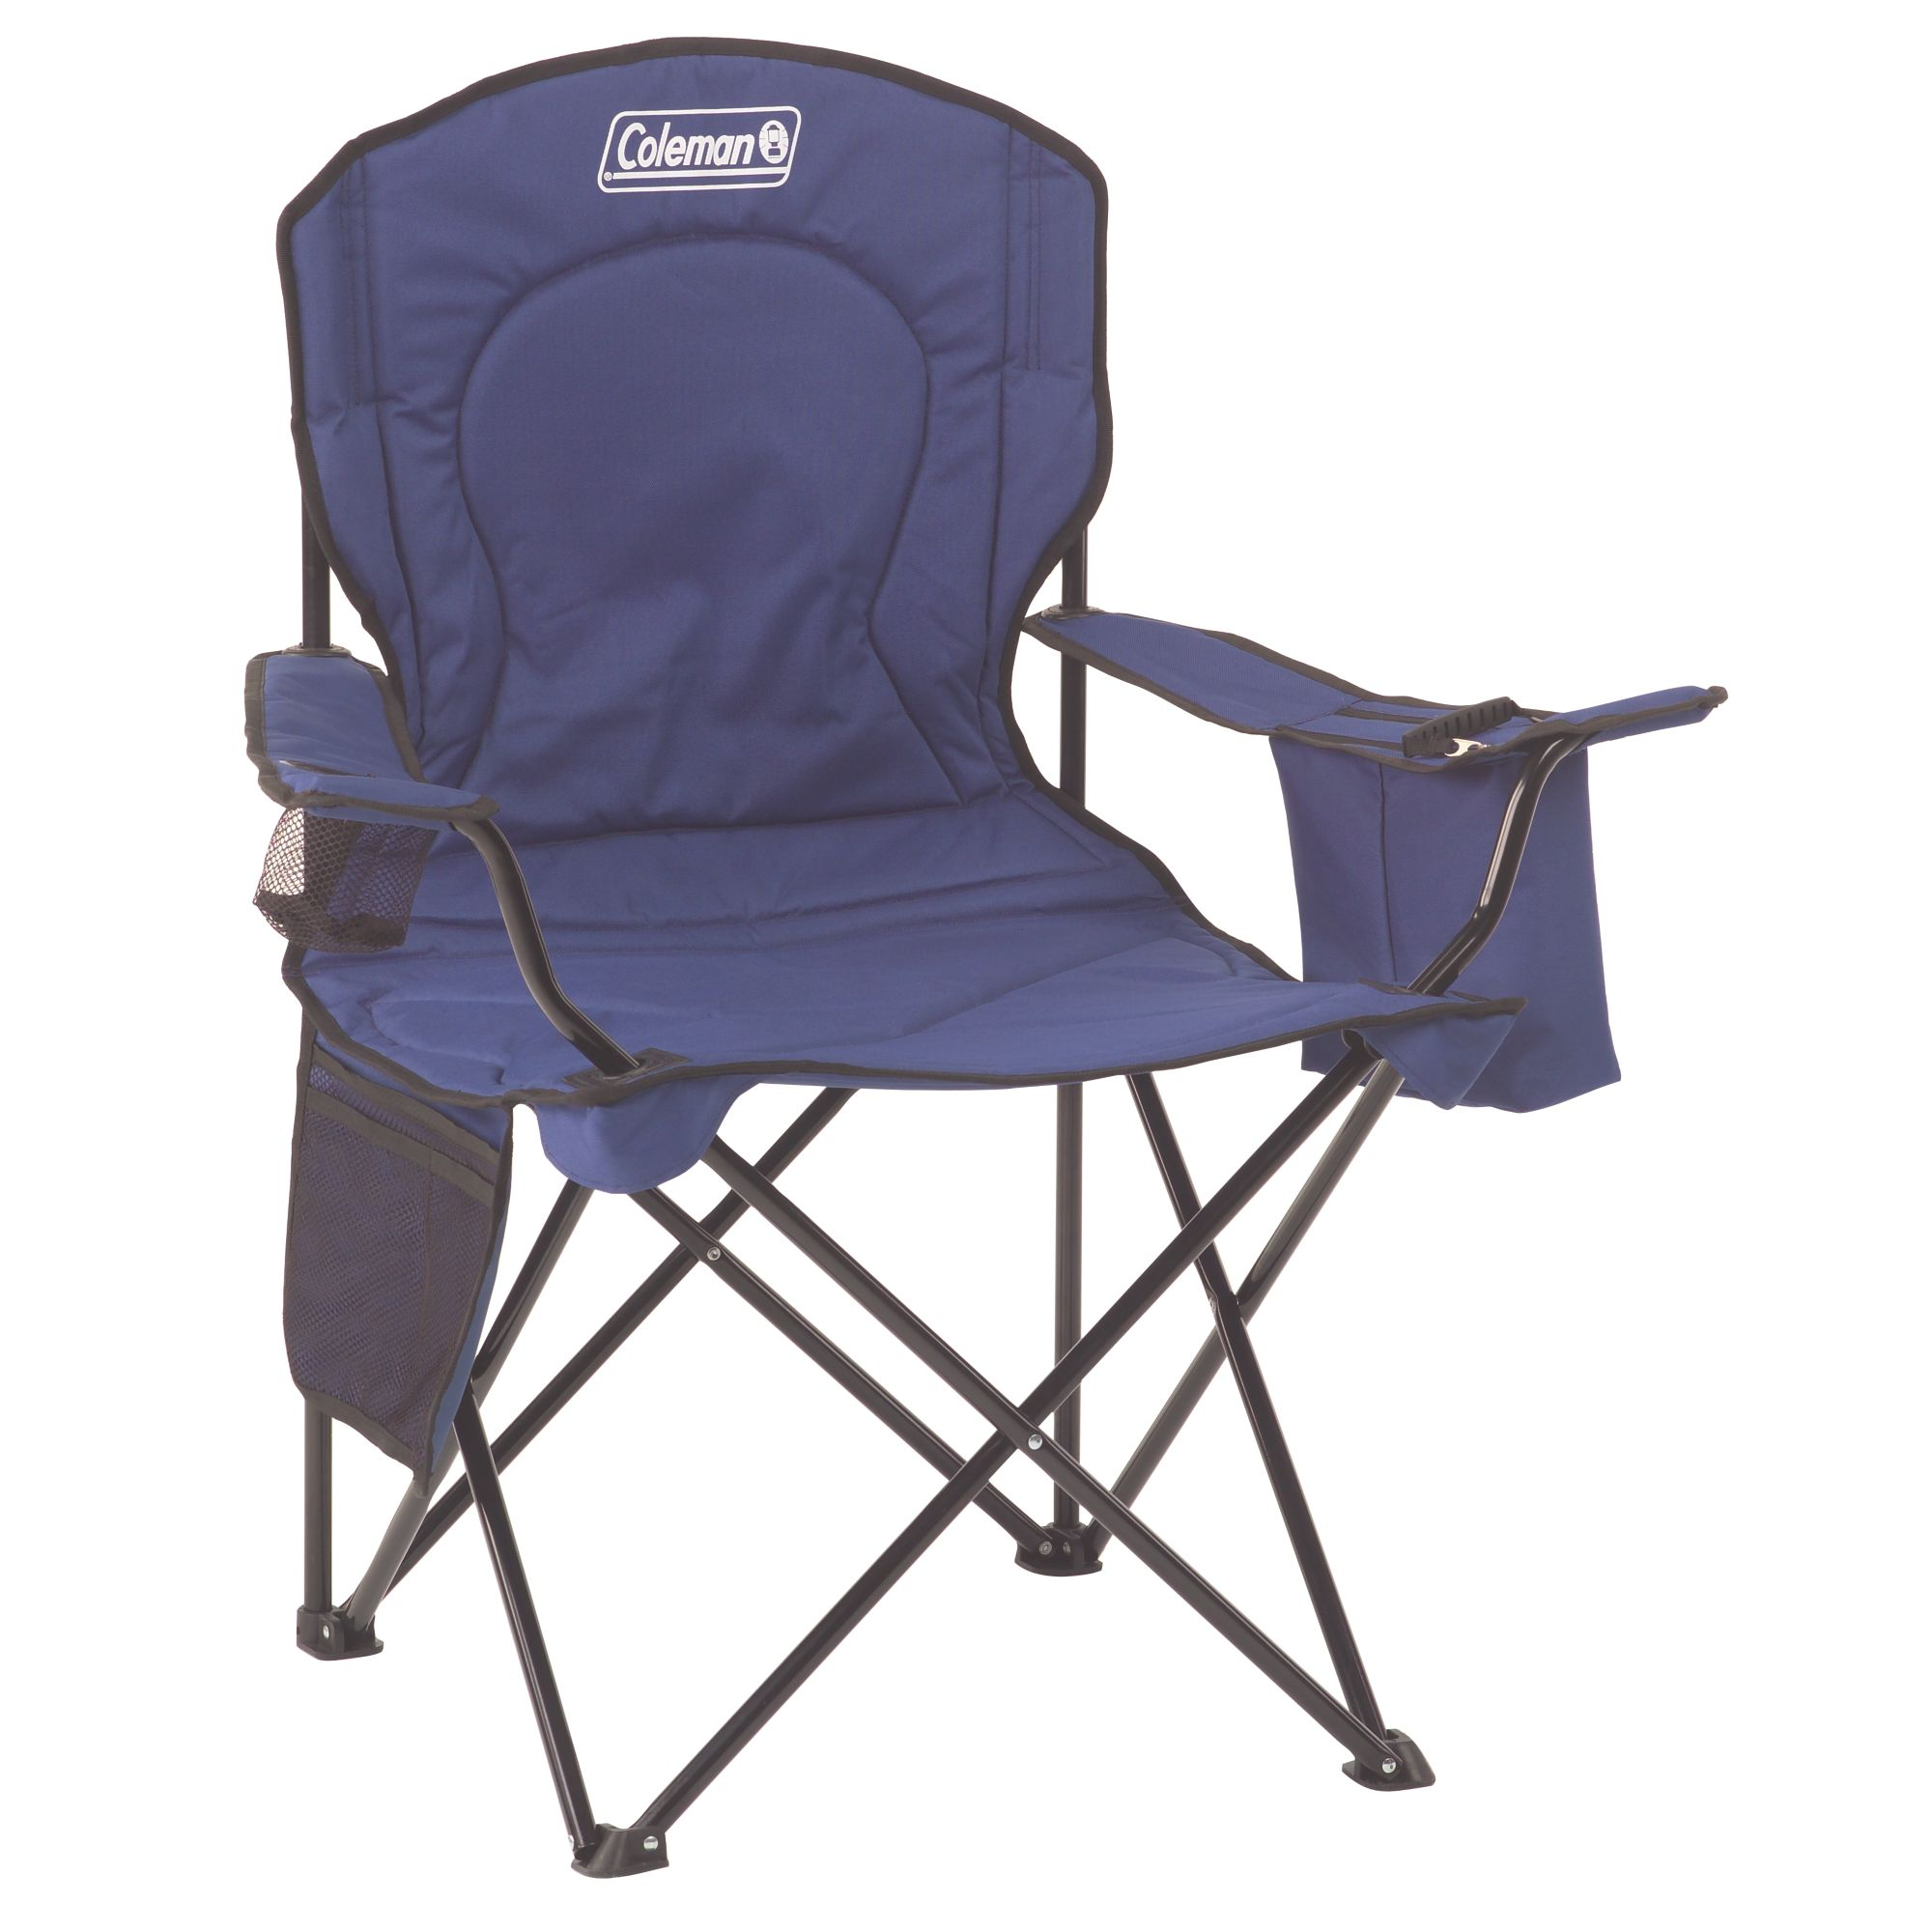 Coleman camp chairs - Cooler Quad Chair